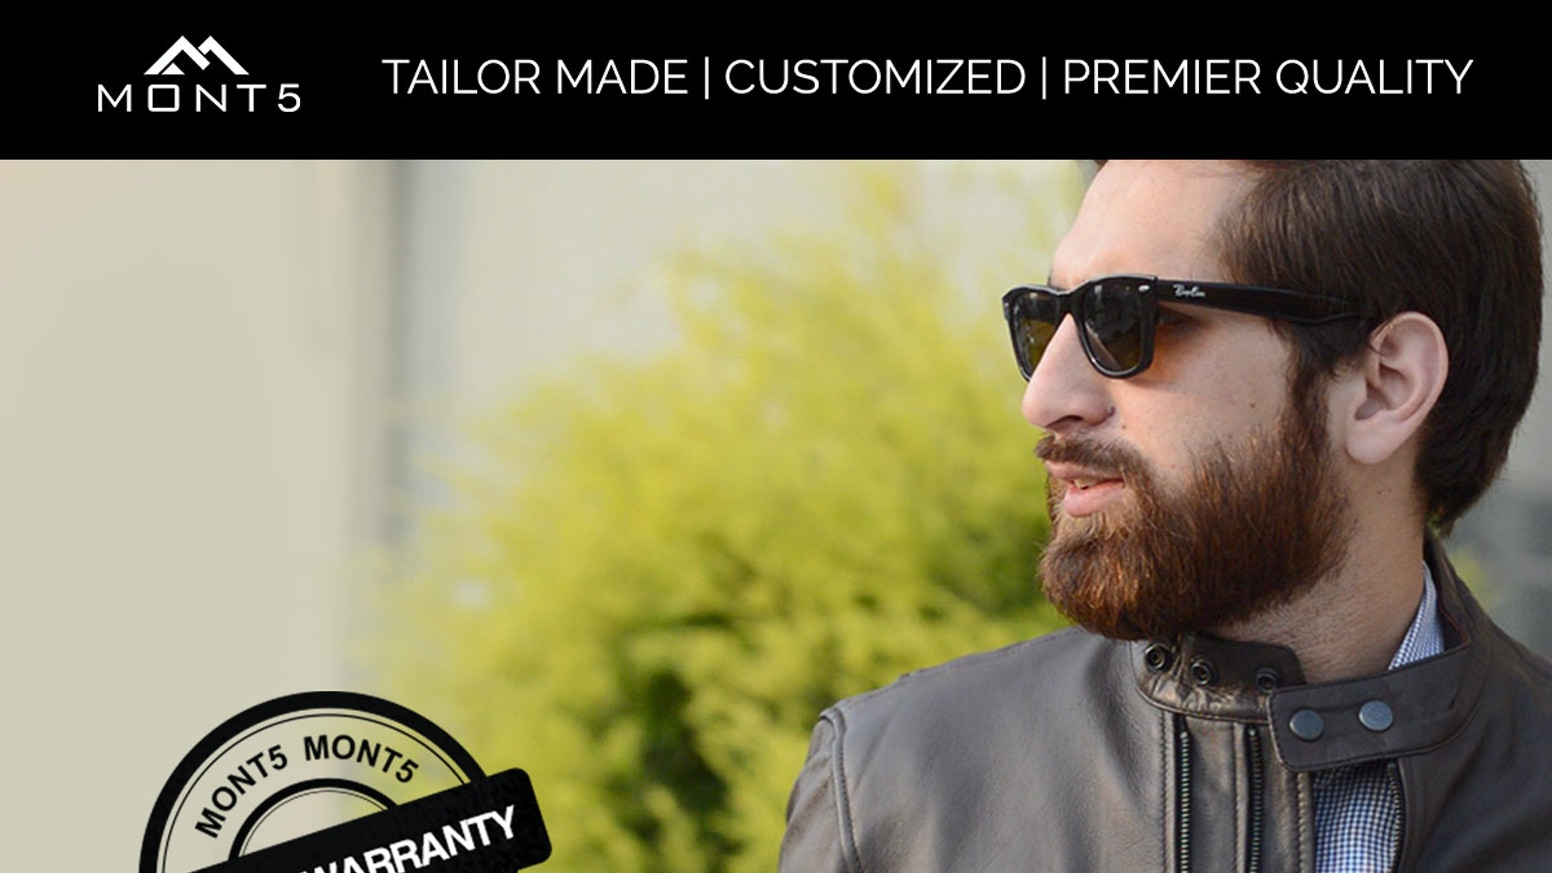 Made-to-measure jackets with a LIFETIME warranty. Classic designs with a modern touch, personalized for each customer.